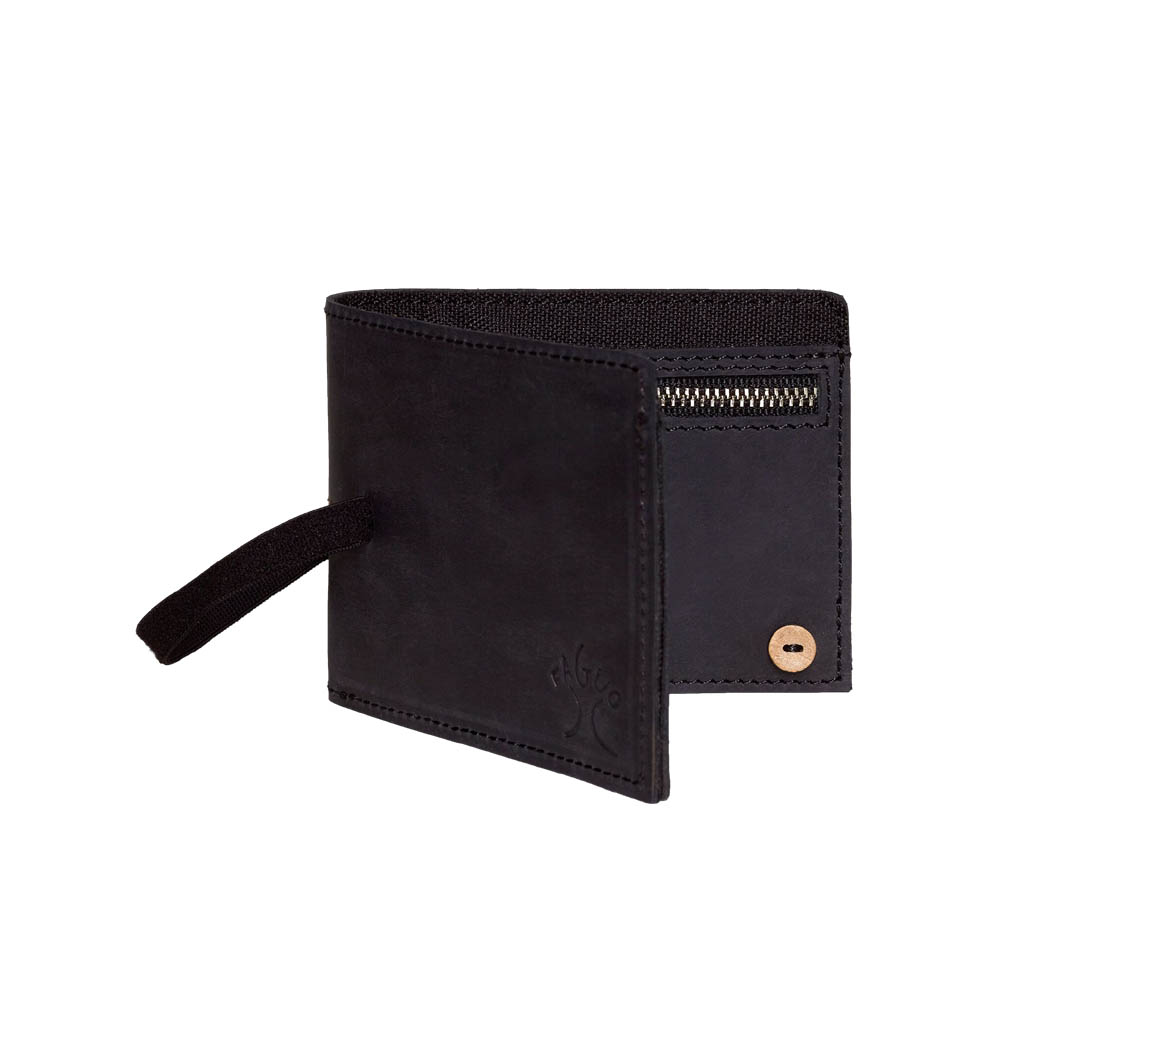 Portefeuille homme Wallet 7